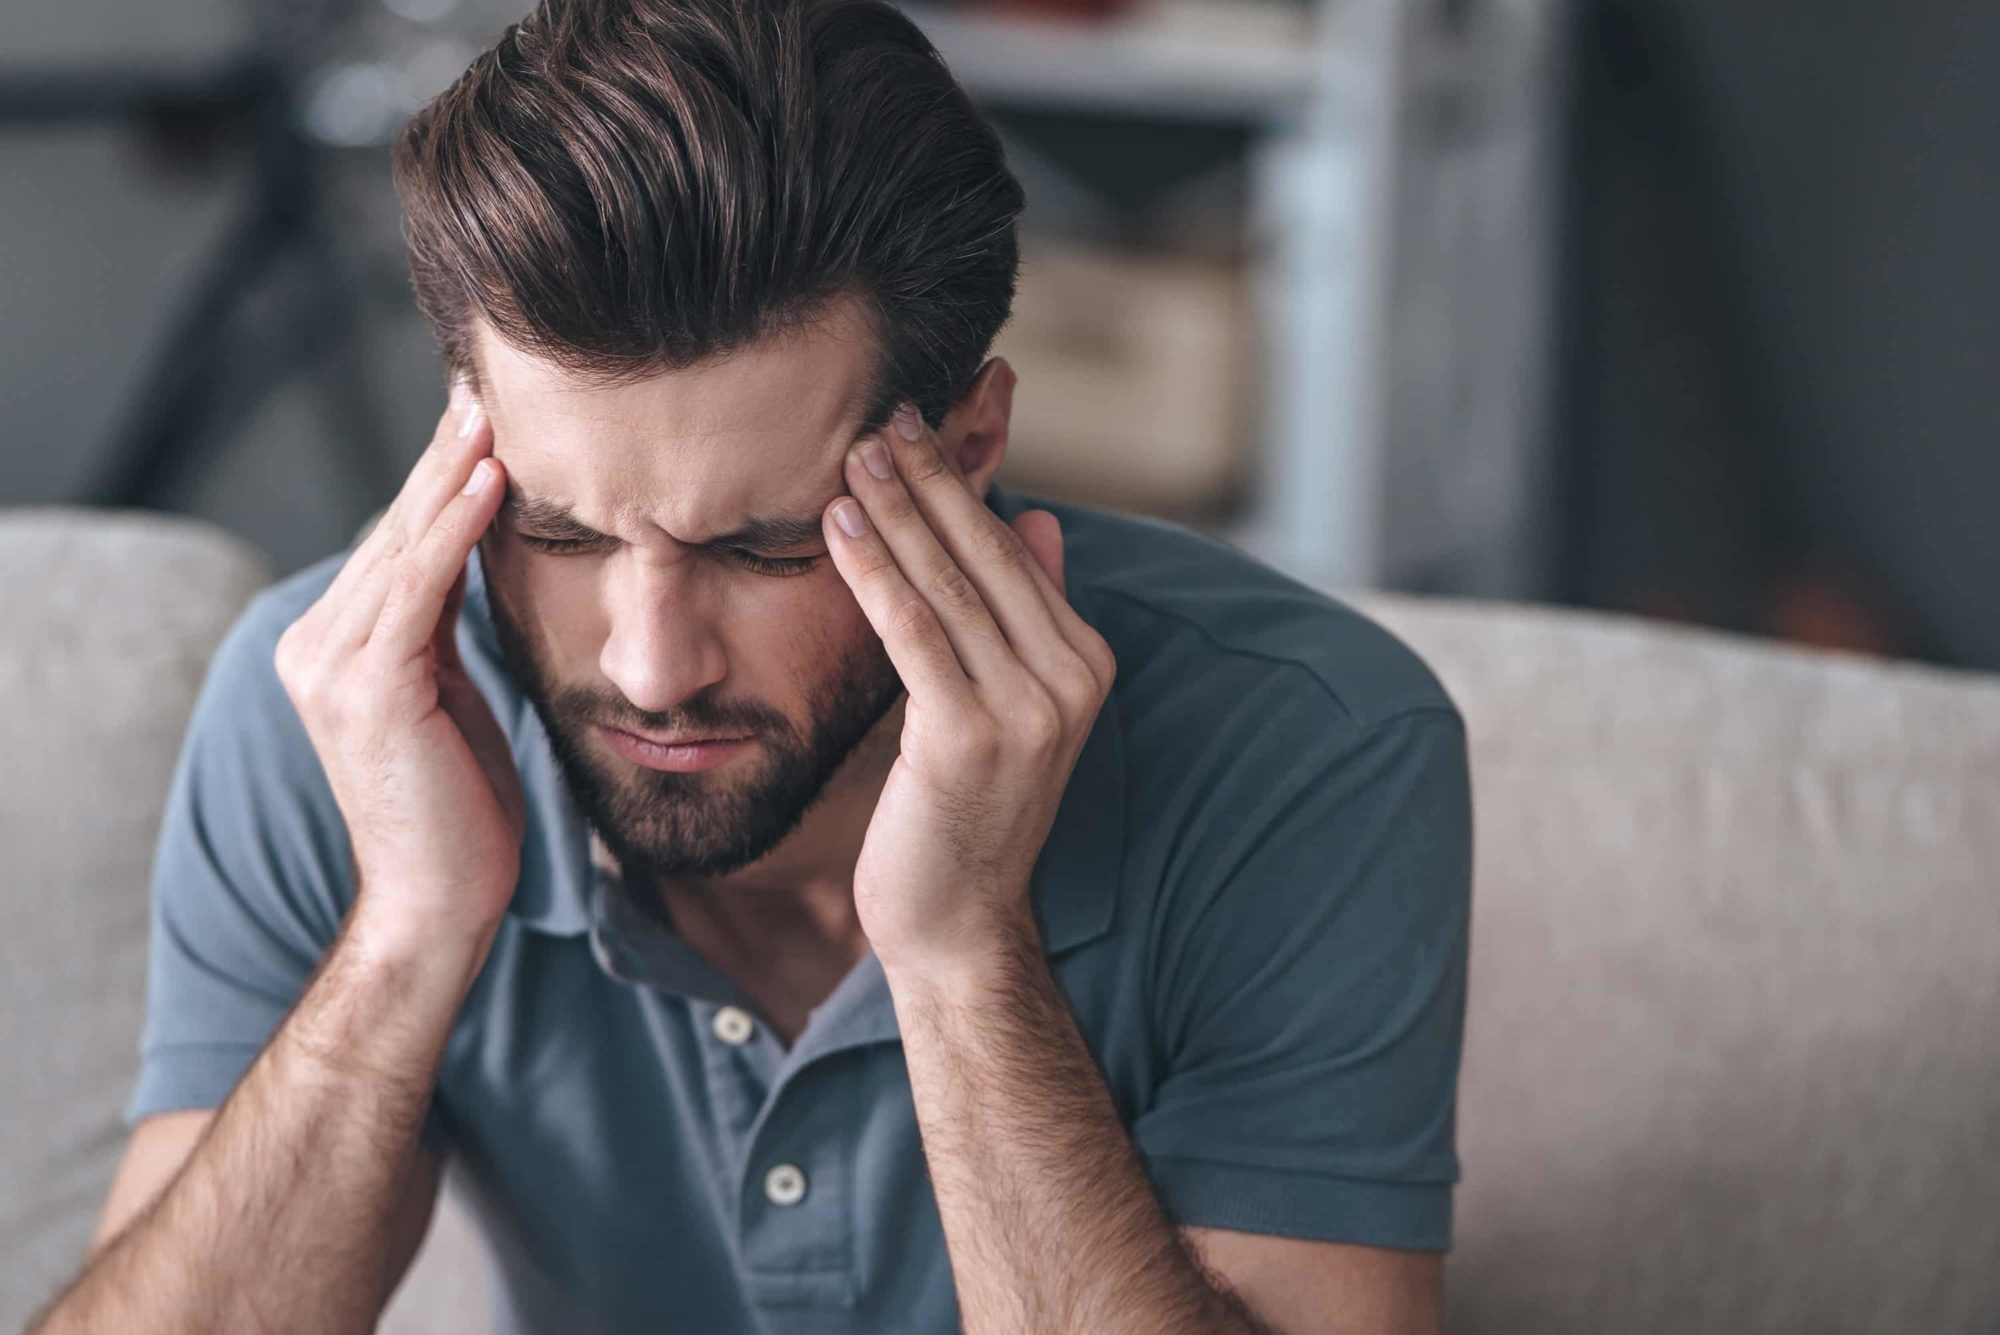 Self help massage tips for dealing with headaches